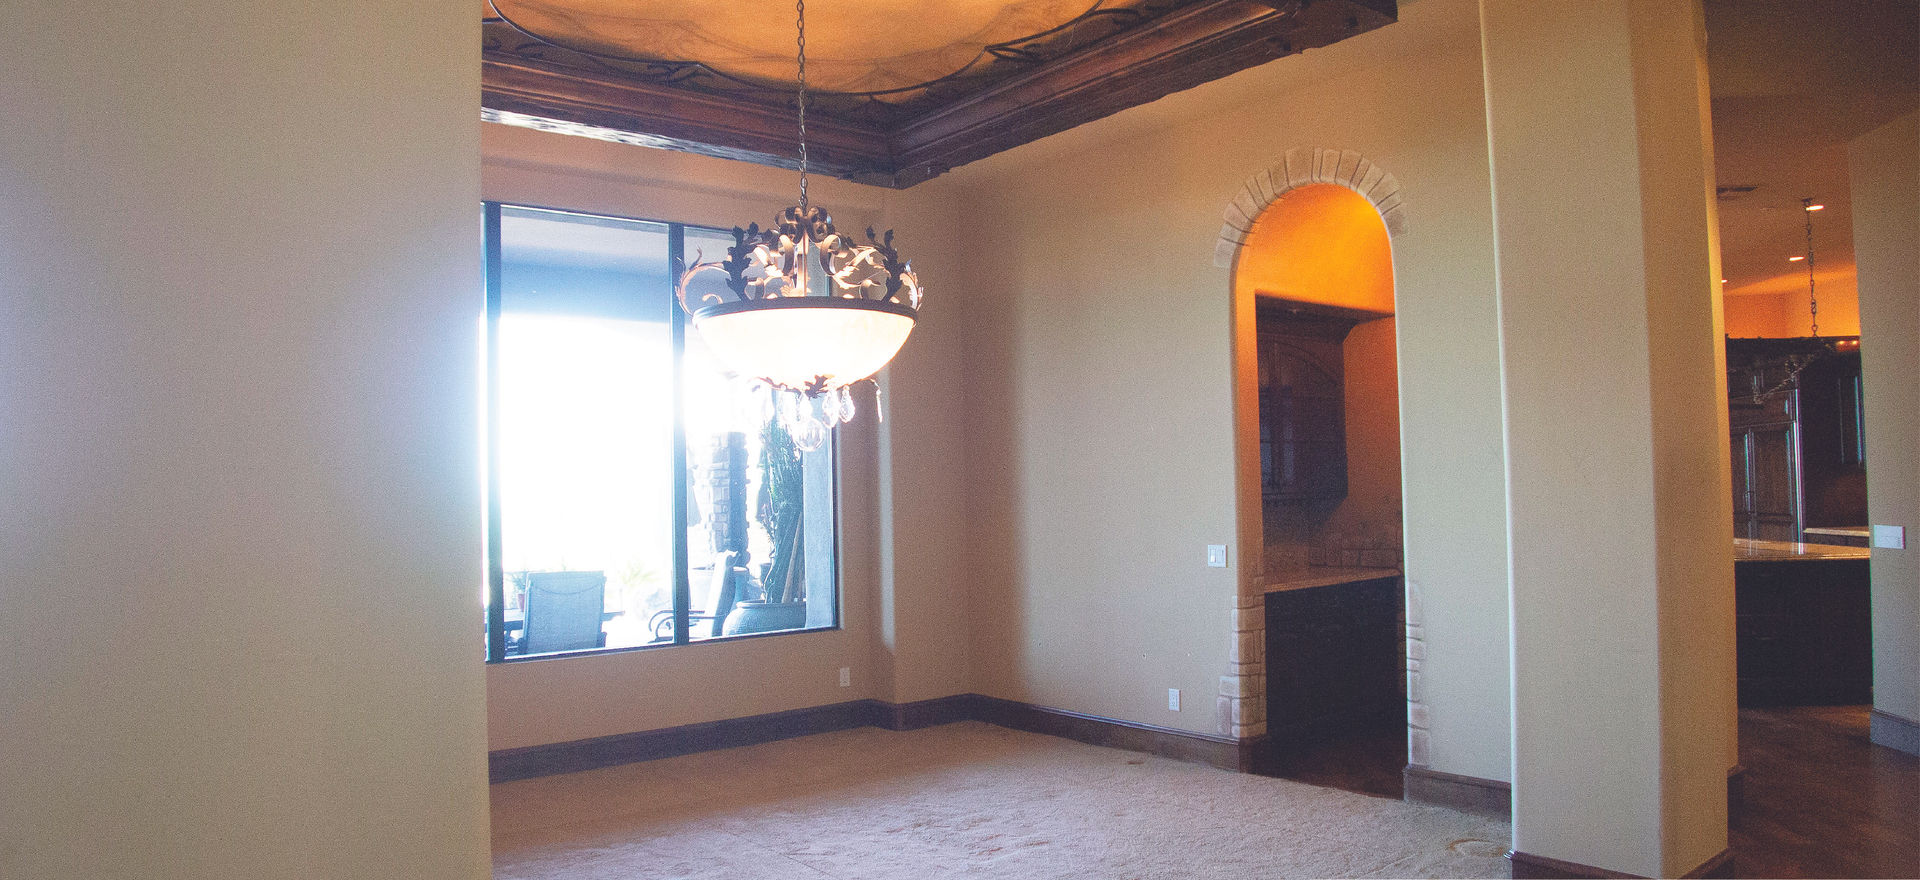 The original dining room and pass through entrance to the wine room.  We removed some of the Tuscan ceiling detail and created an entirely new wine room experience.